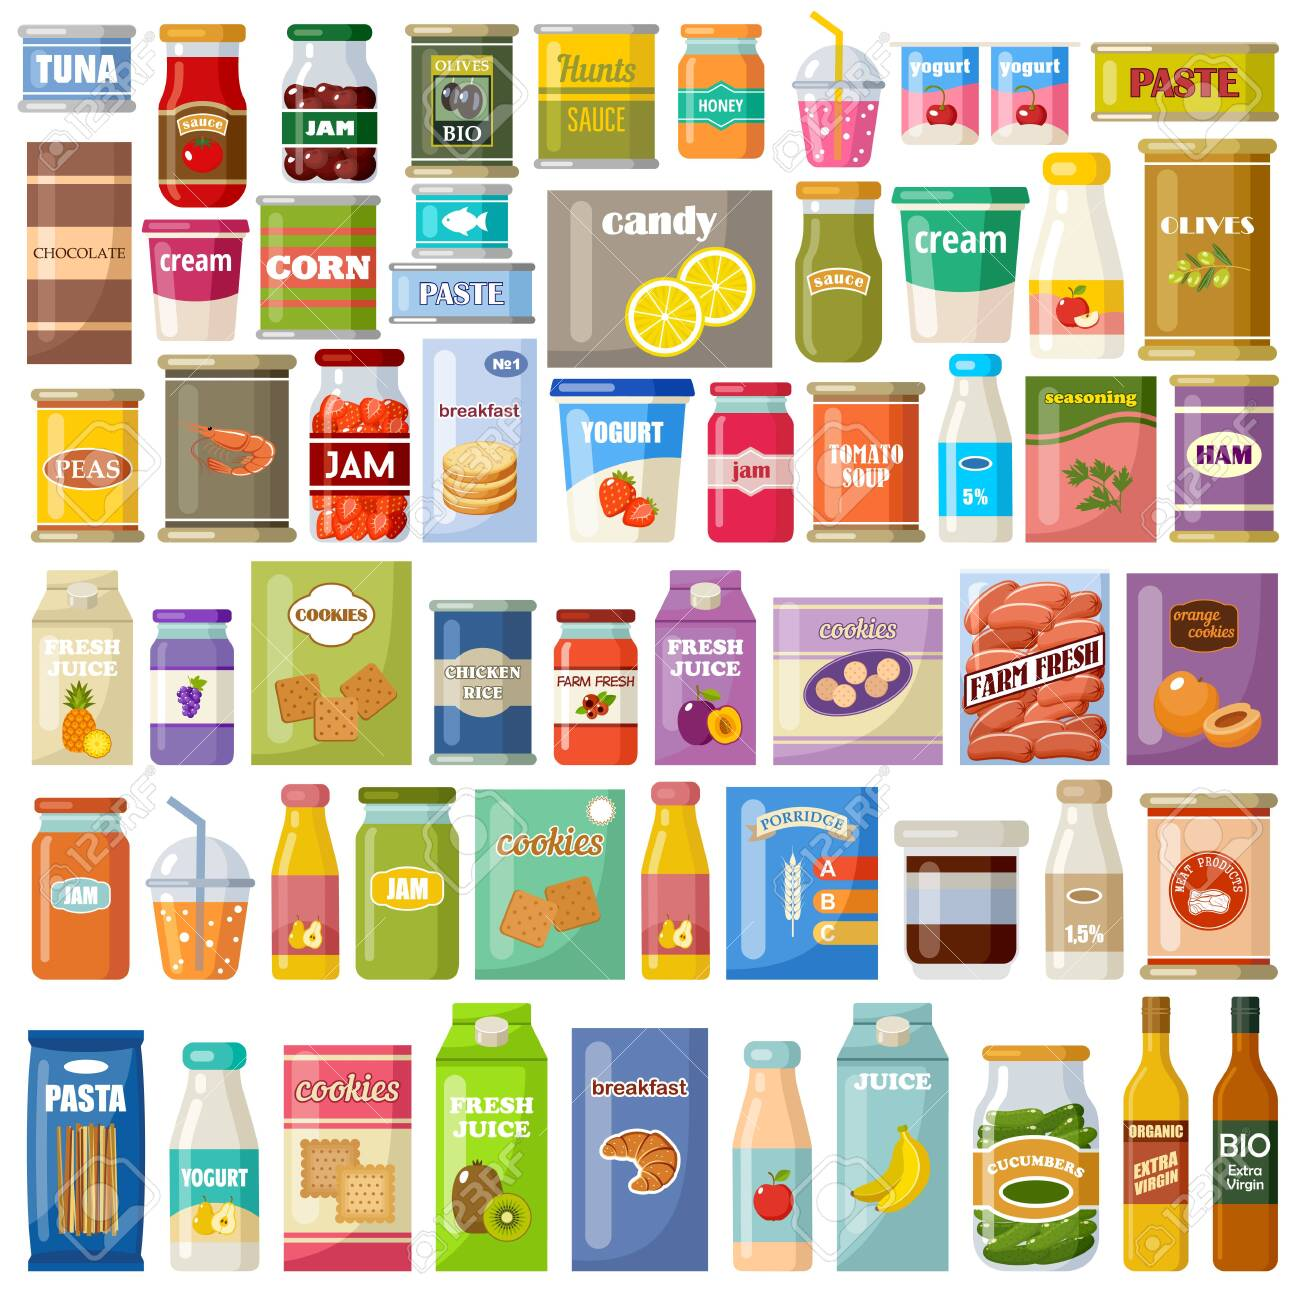 Set of products on a white background. Grocery. Gastronomy. Canned food, juice, jam, cookies. Vector flat illustration. - 141028047